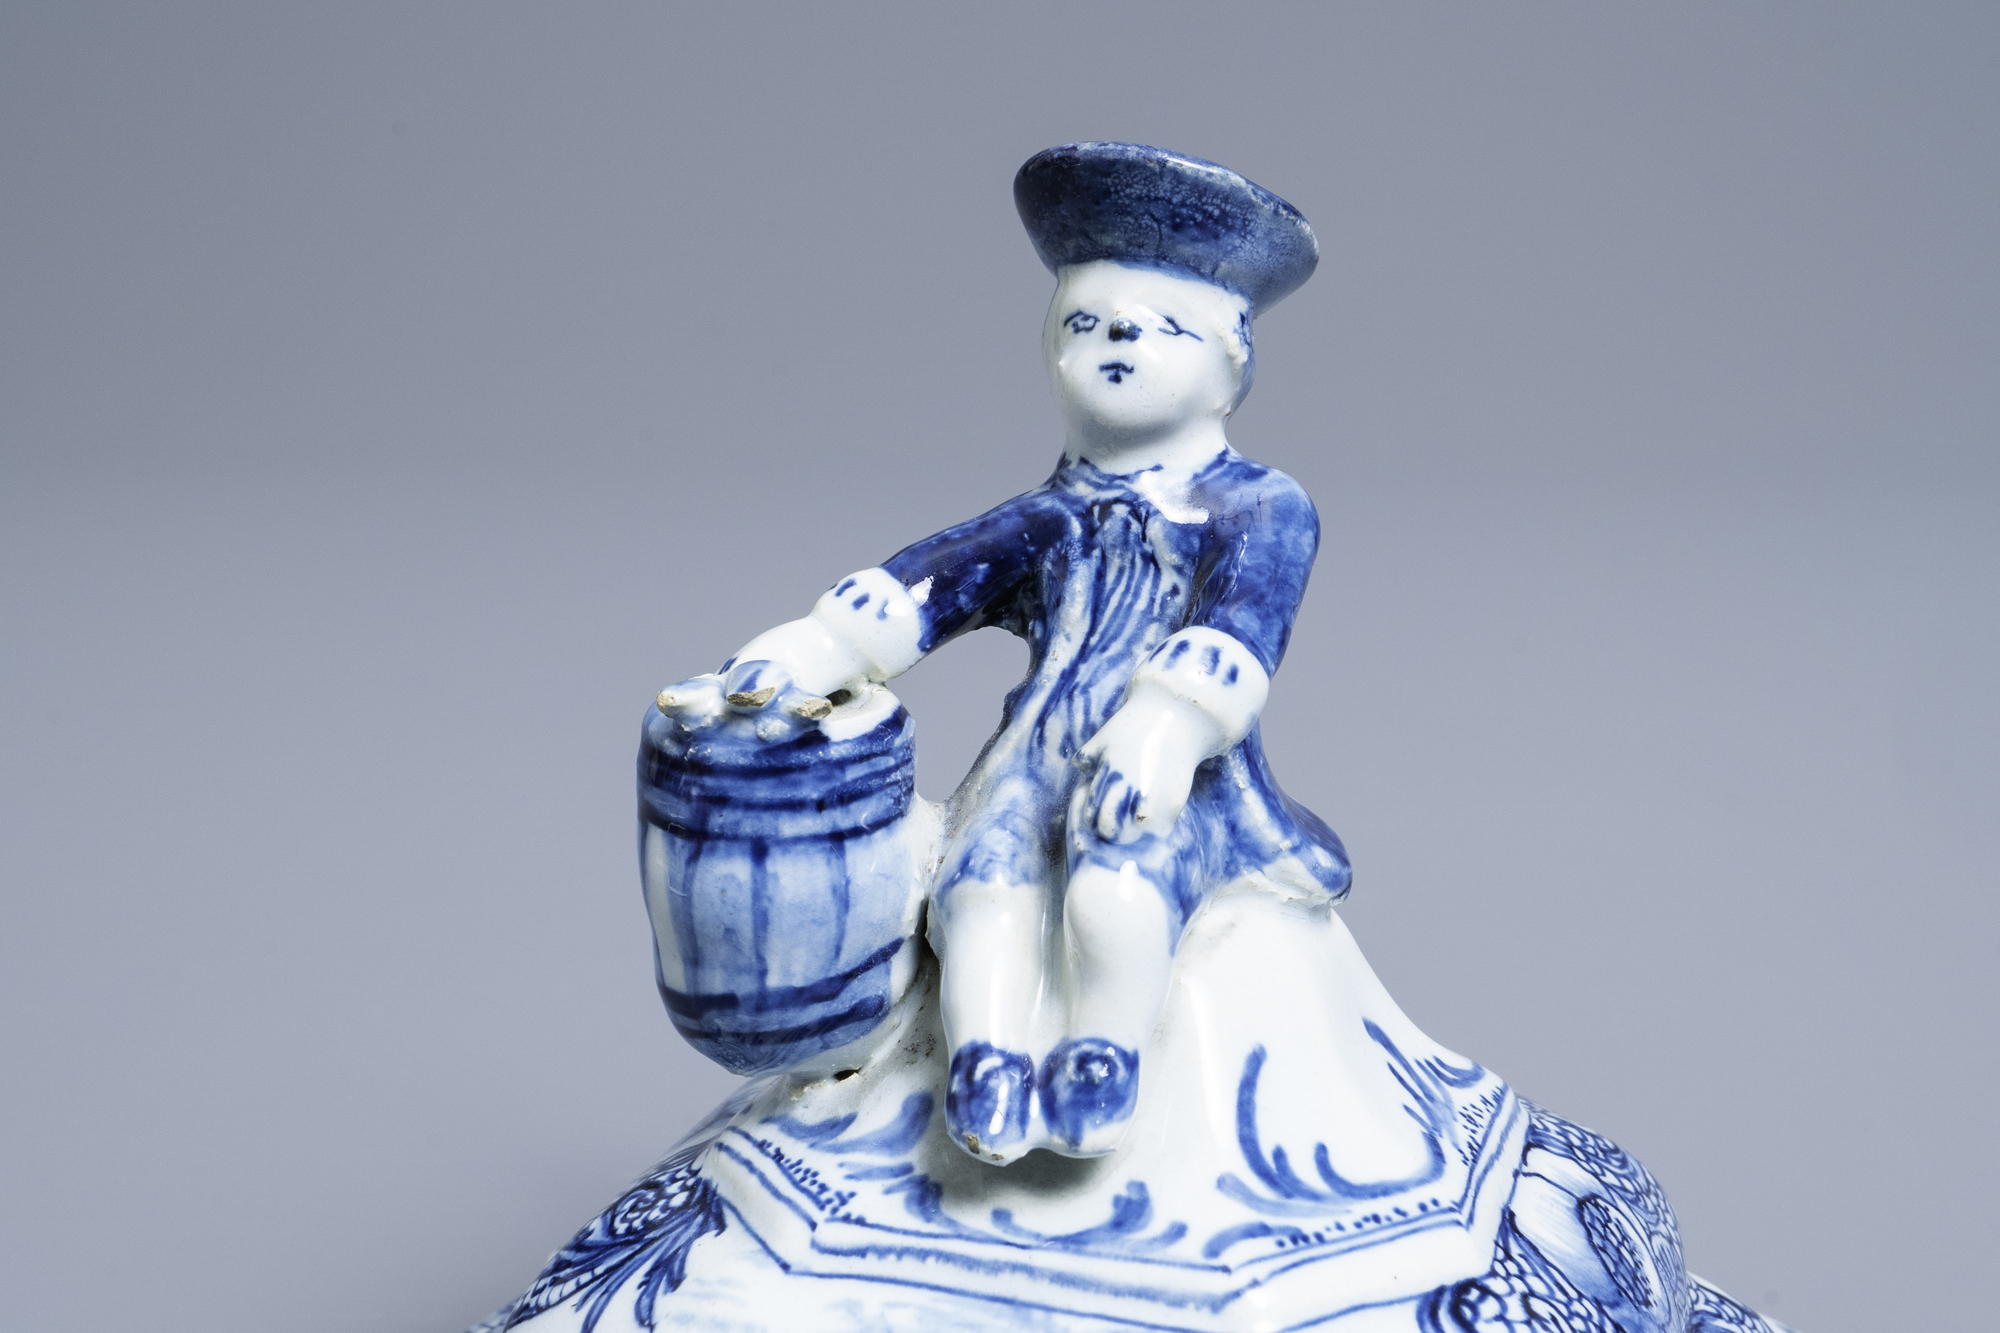 A Dutch Delft blue and white tobacco box and cover with a boy near a barrel, 18th C. - Image 7 of 7